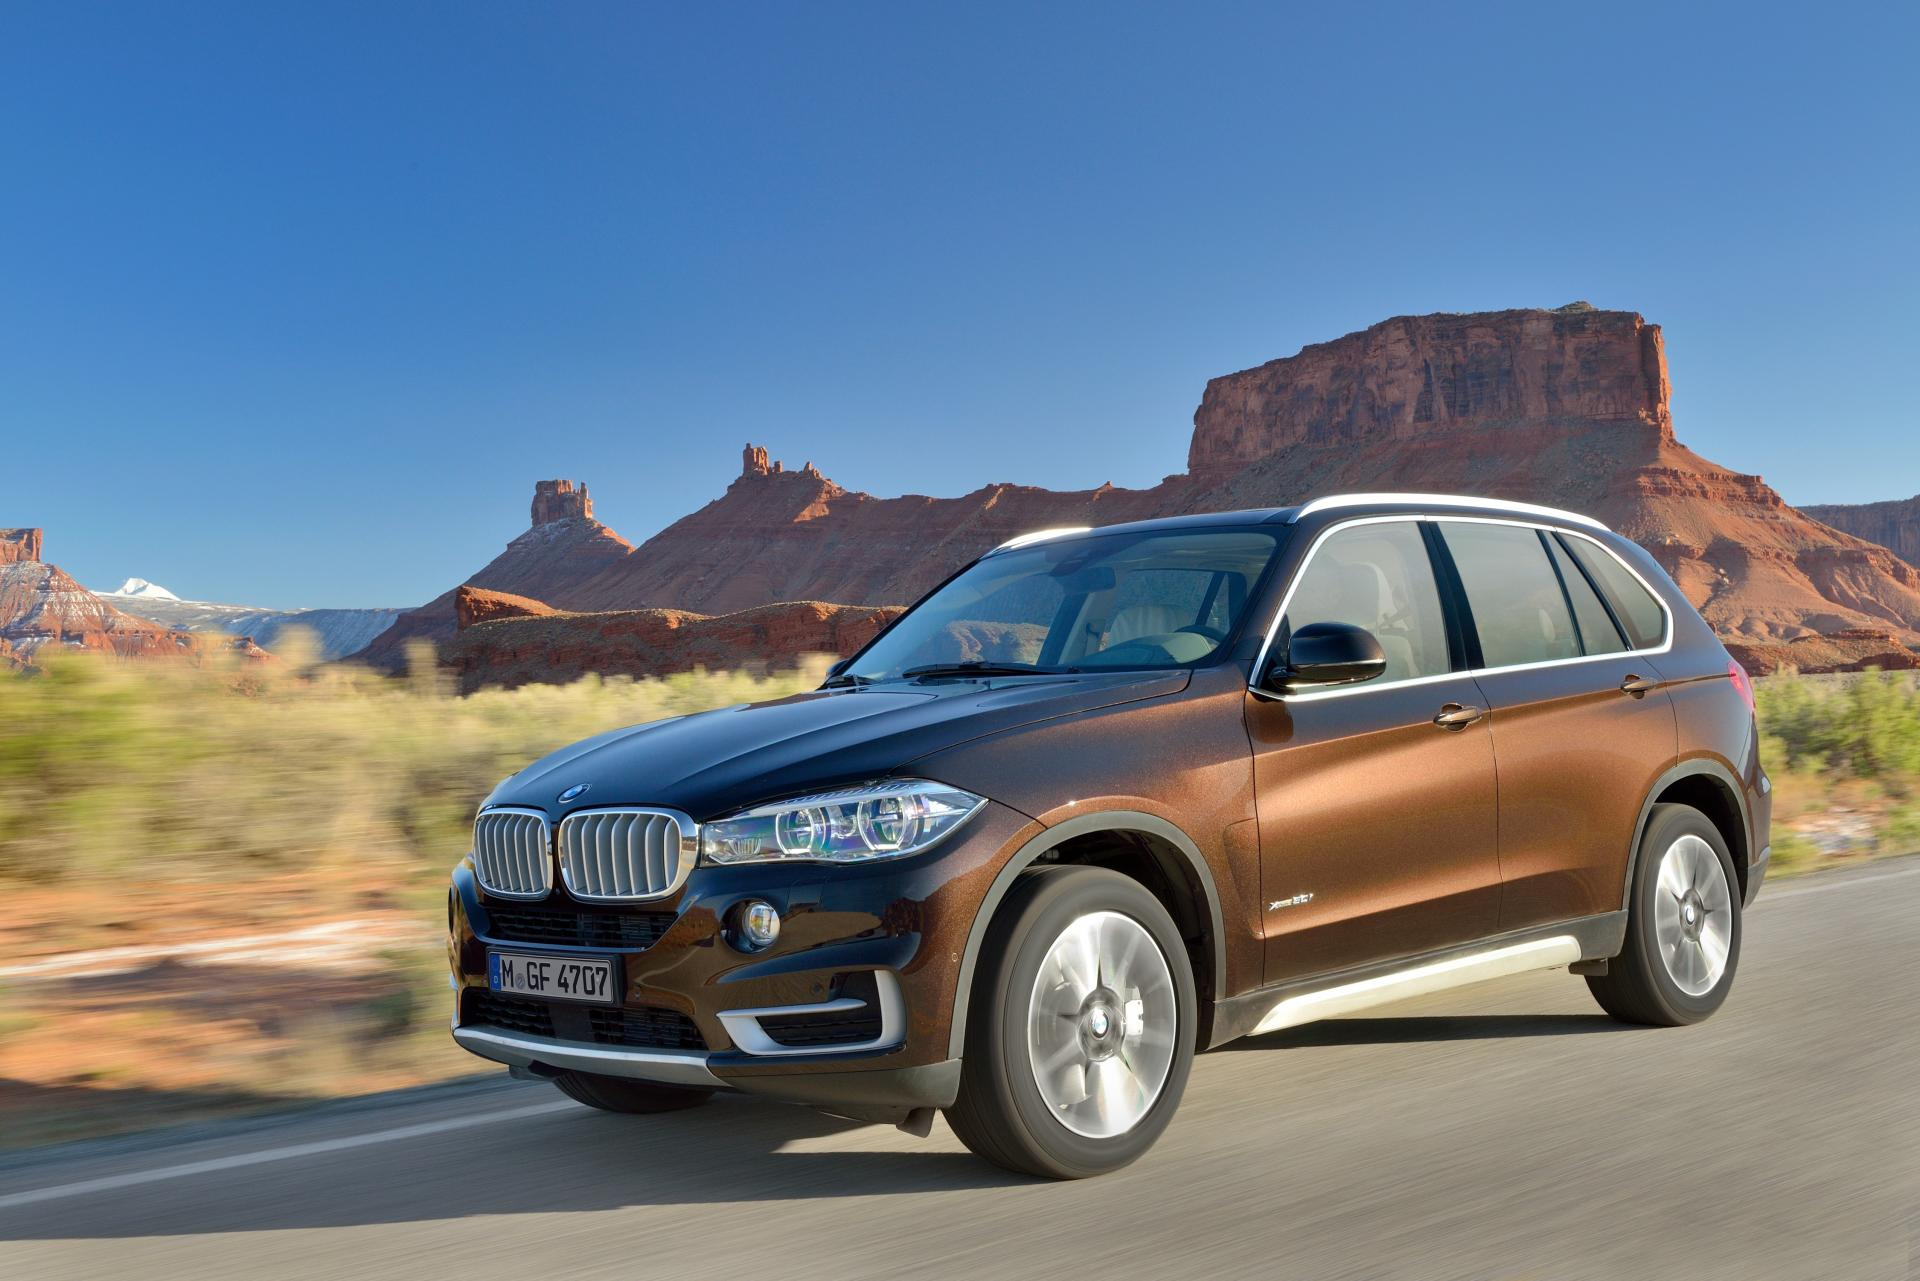 2014 BMW X5 News And Information